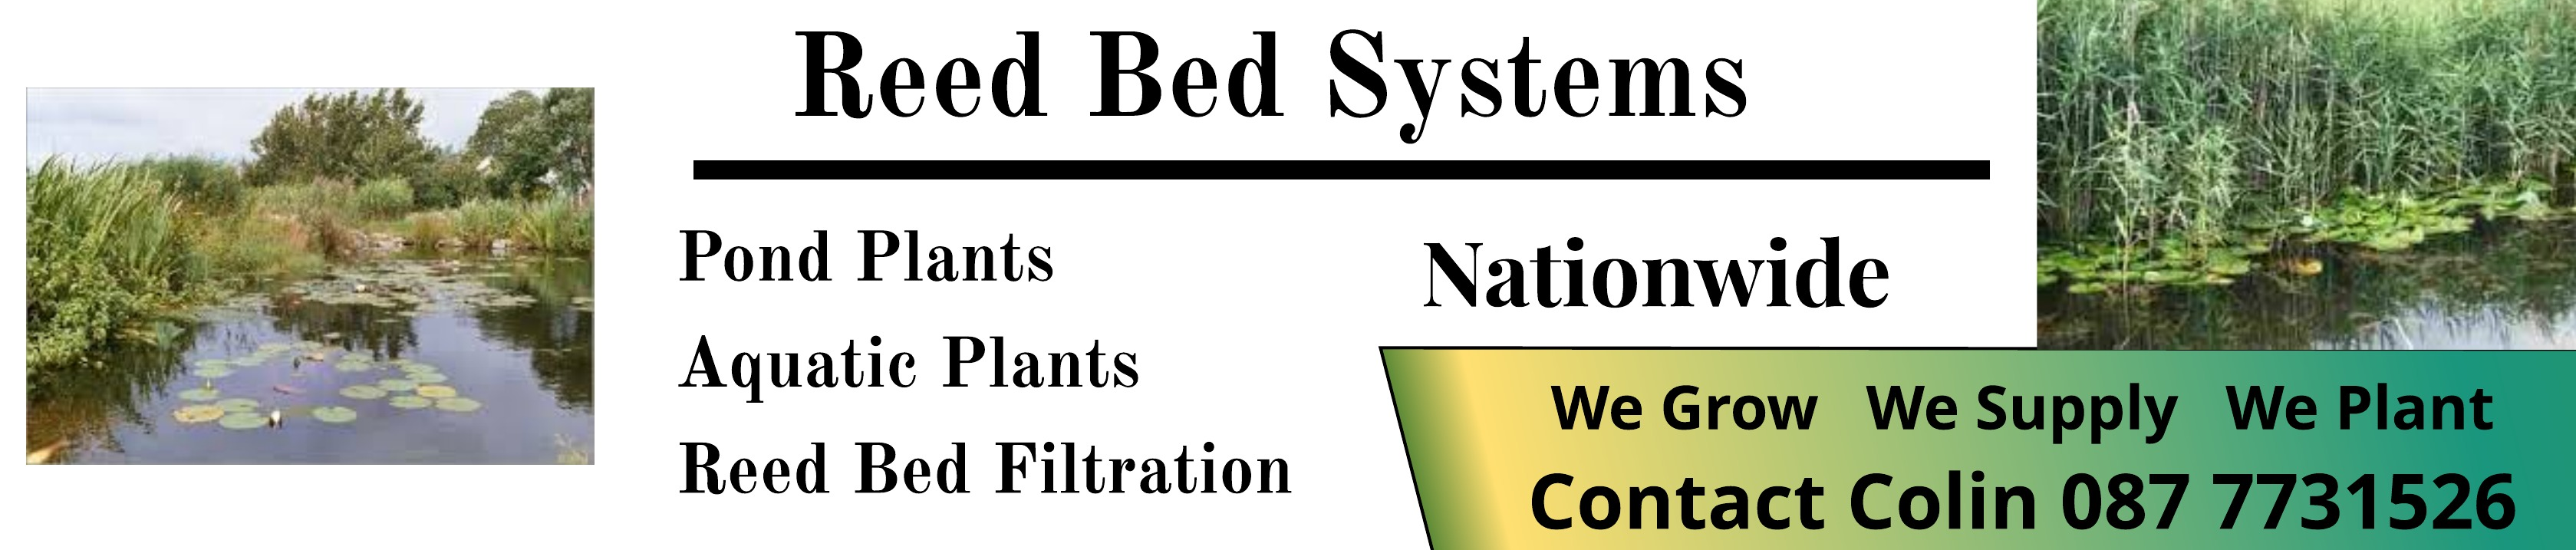 Reed Bed Systems Derry Reed Bed Systems In Derry Co